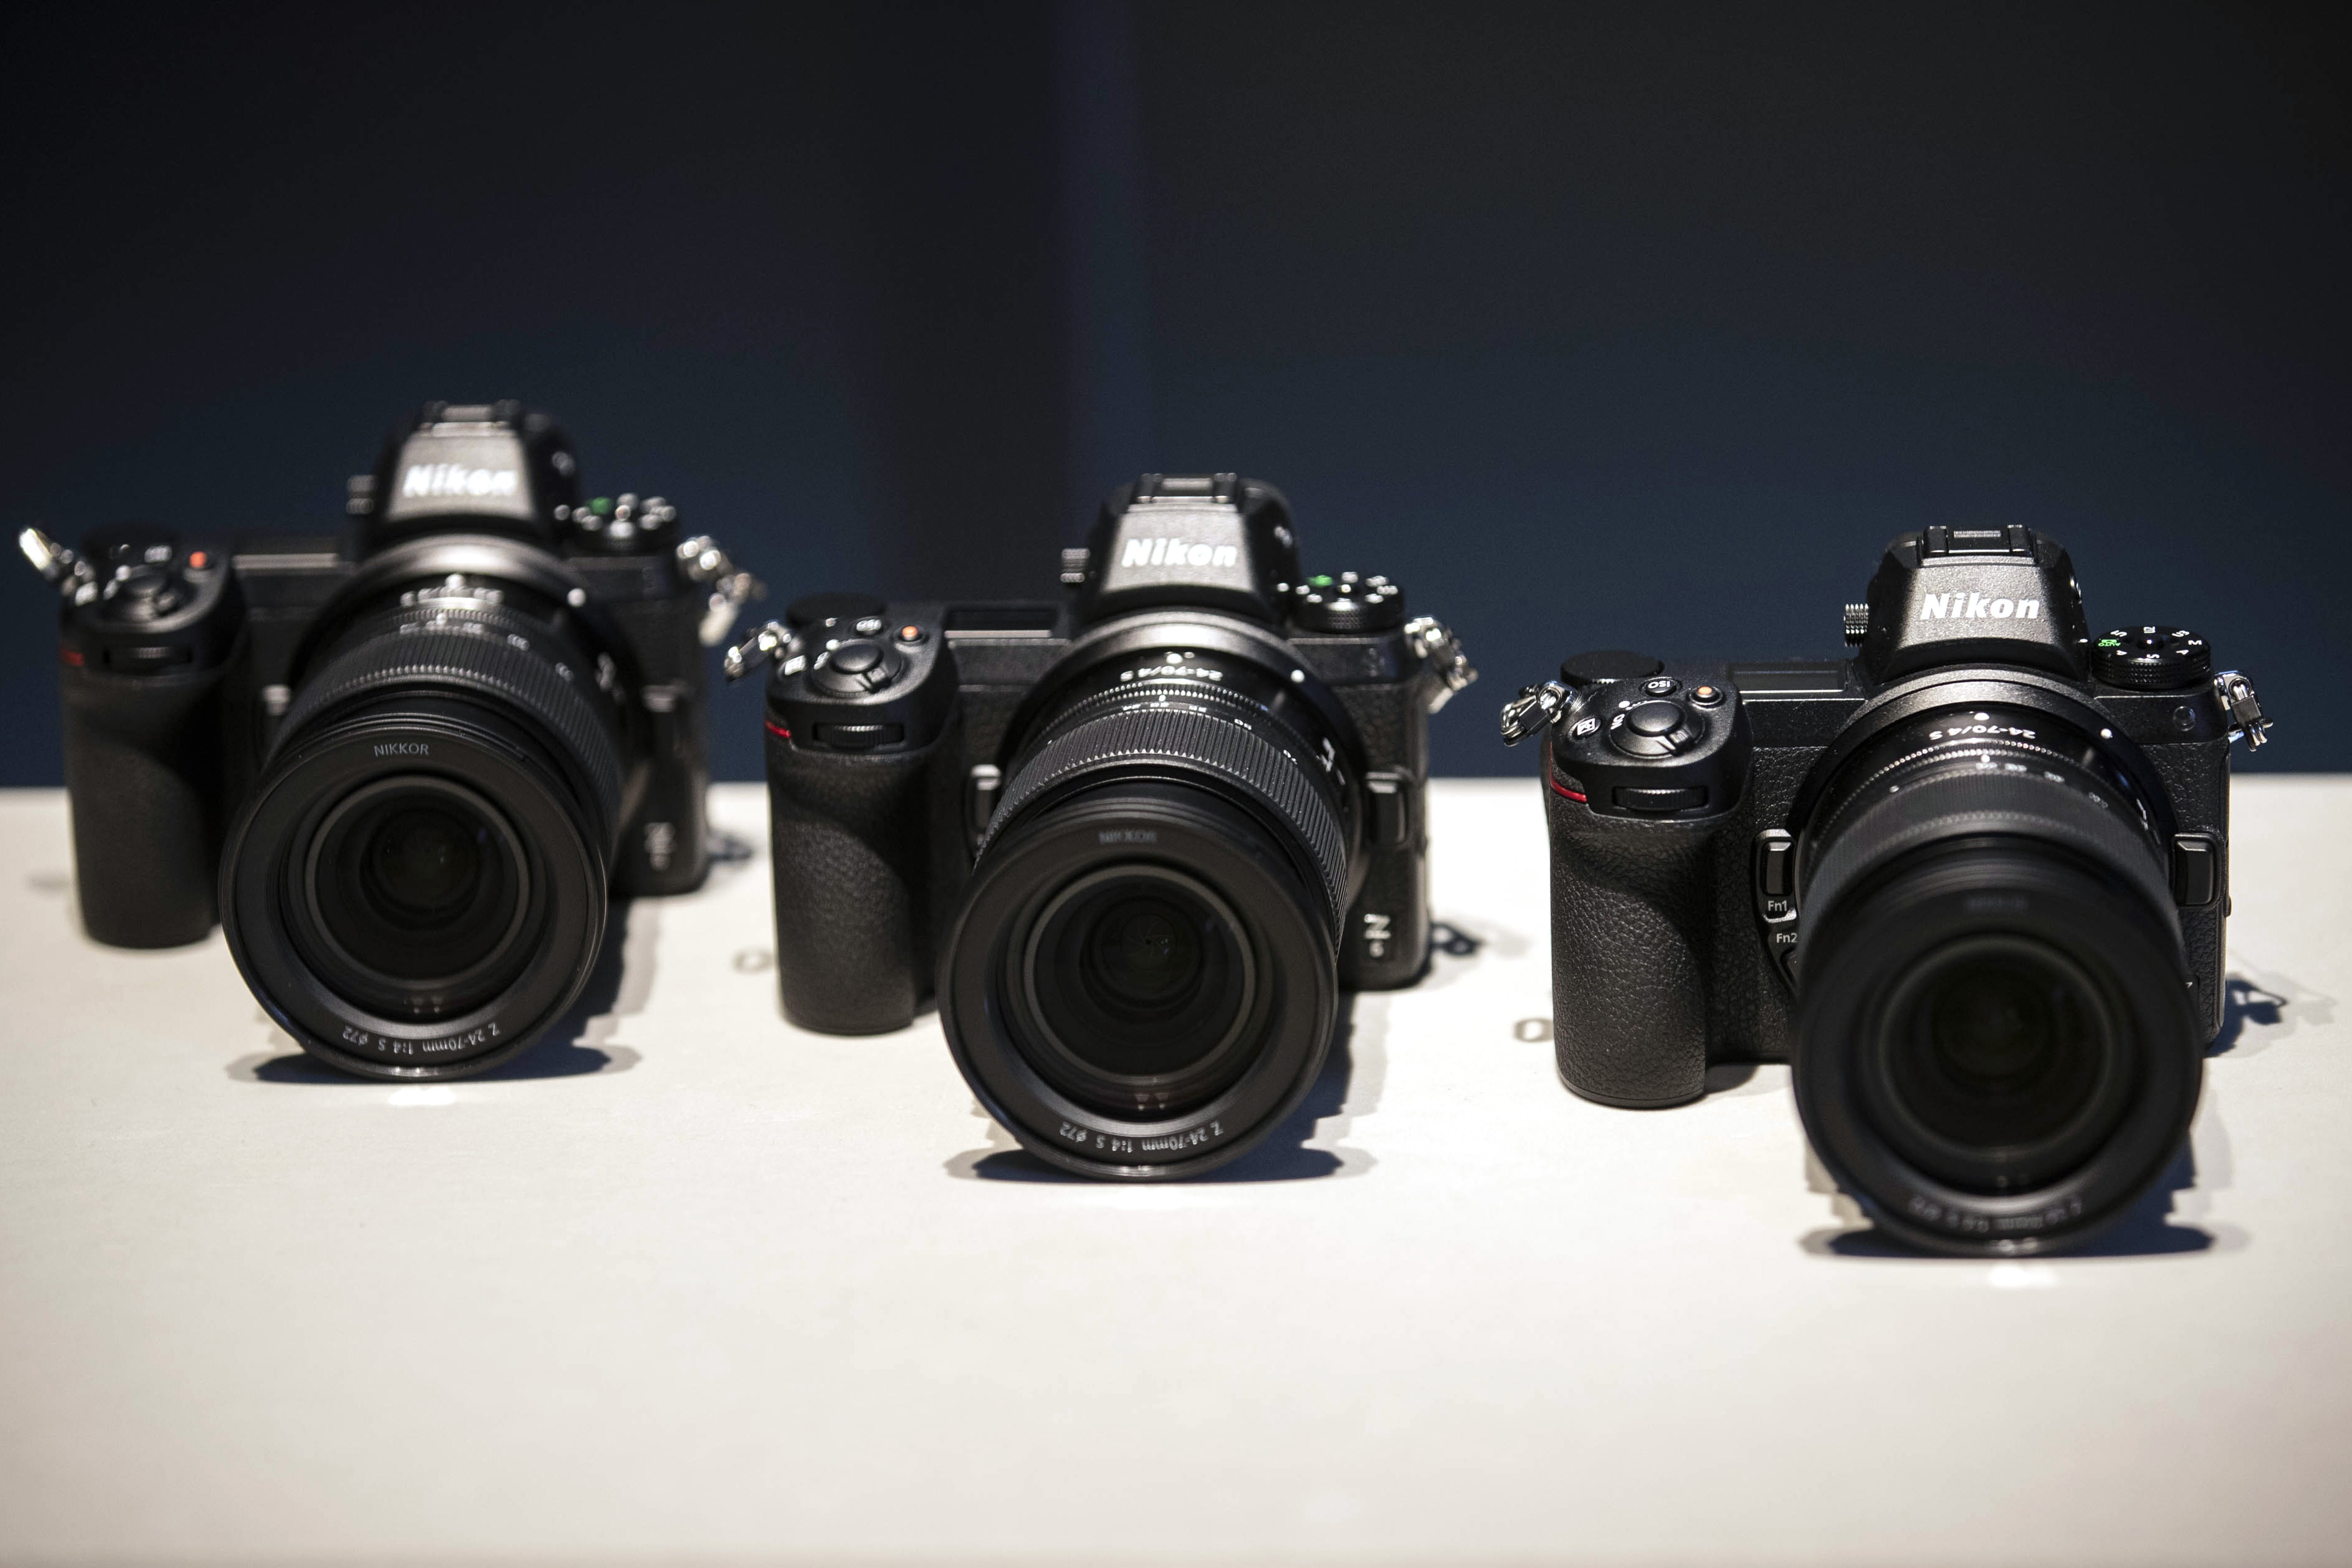 Nikon presented the first mirrorless cameras, shooting 9 and 12 frames per second 54